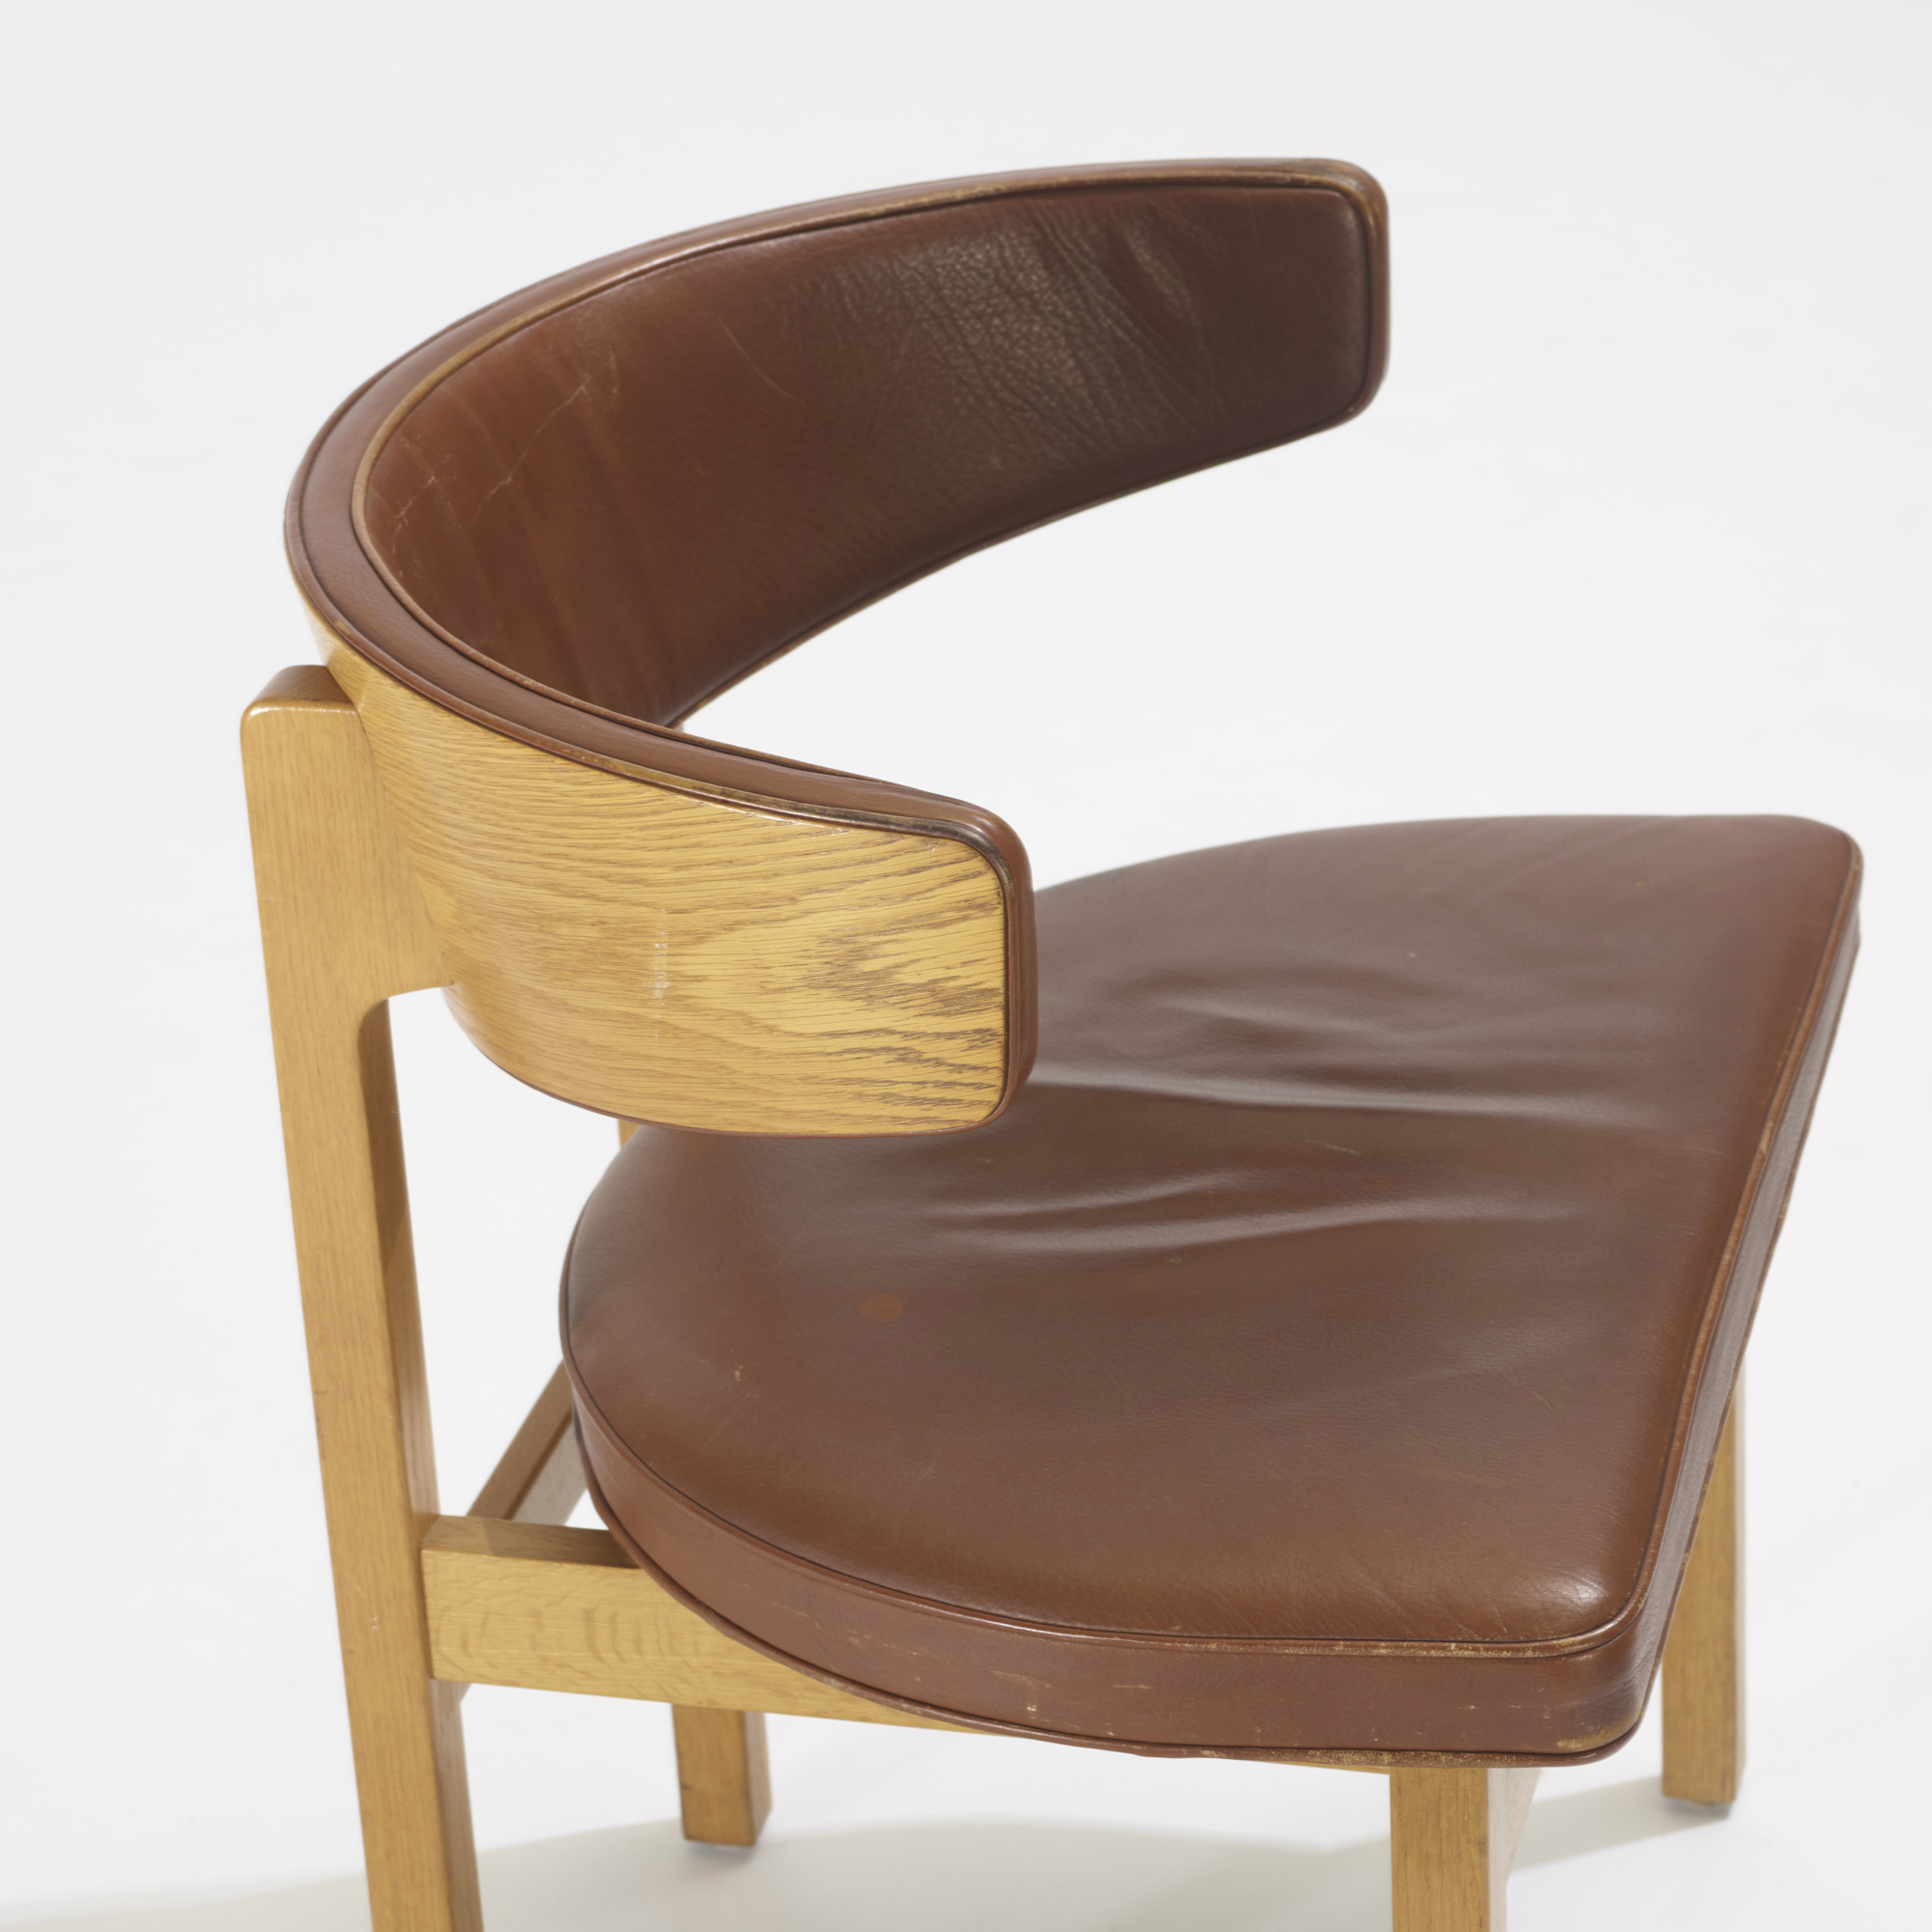 240: Børge Mogensen / Conference chairs, set of four (3 of 4)